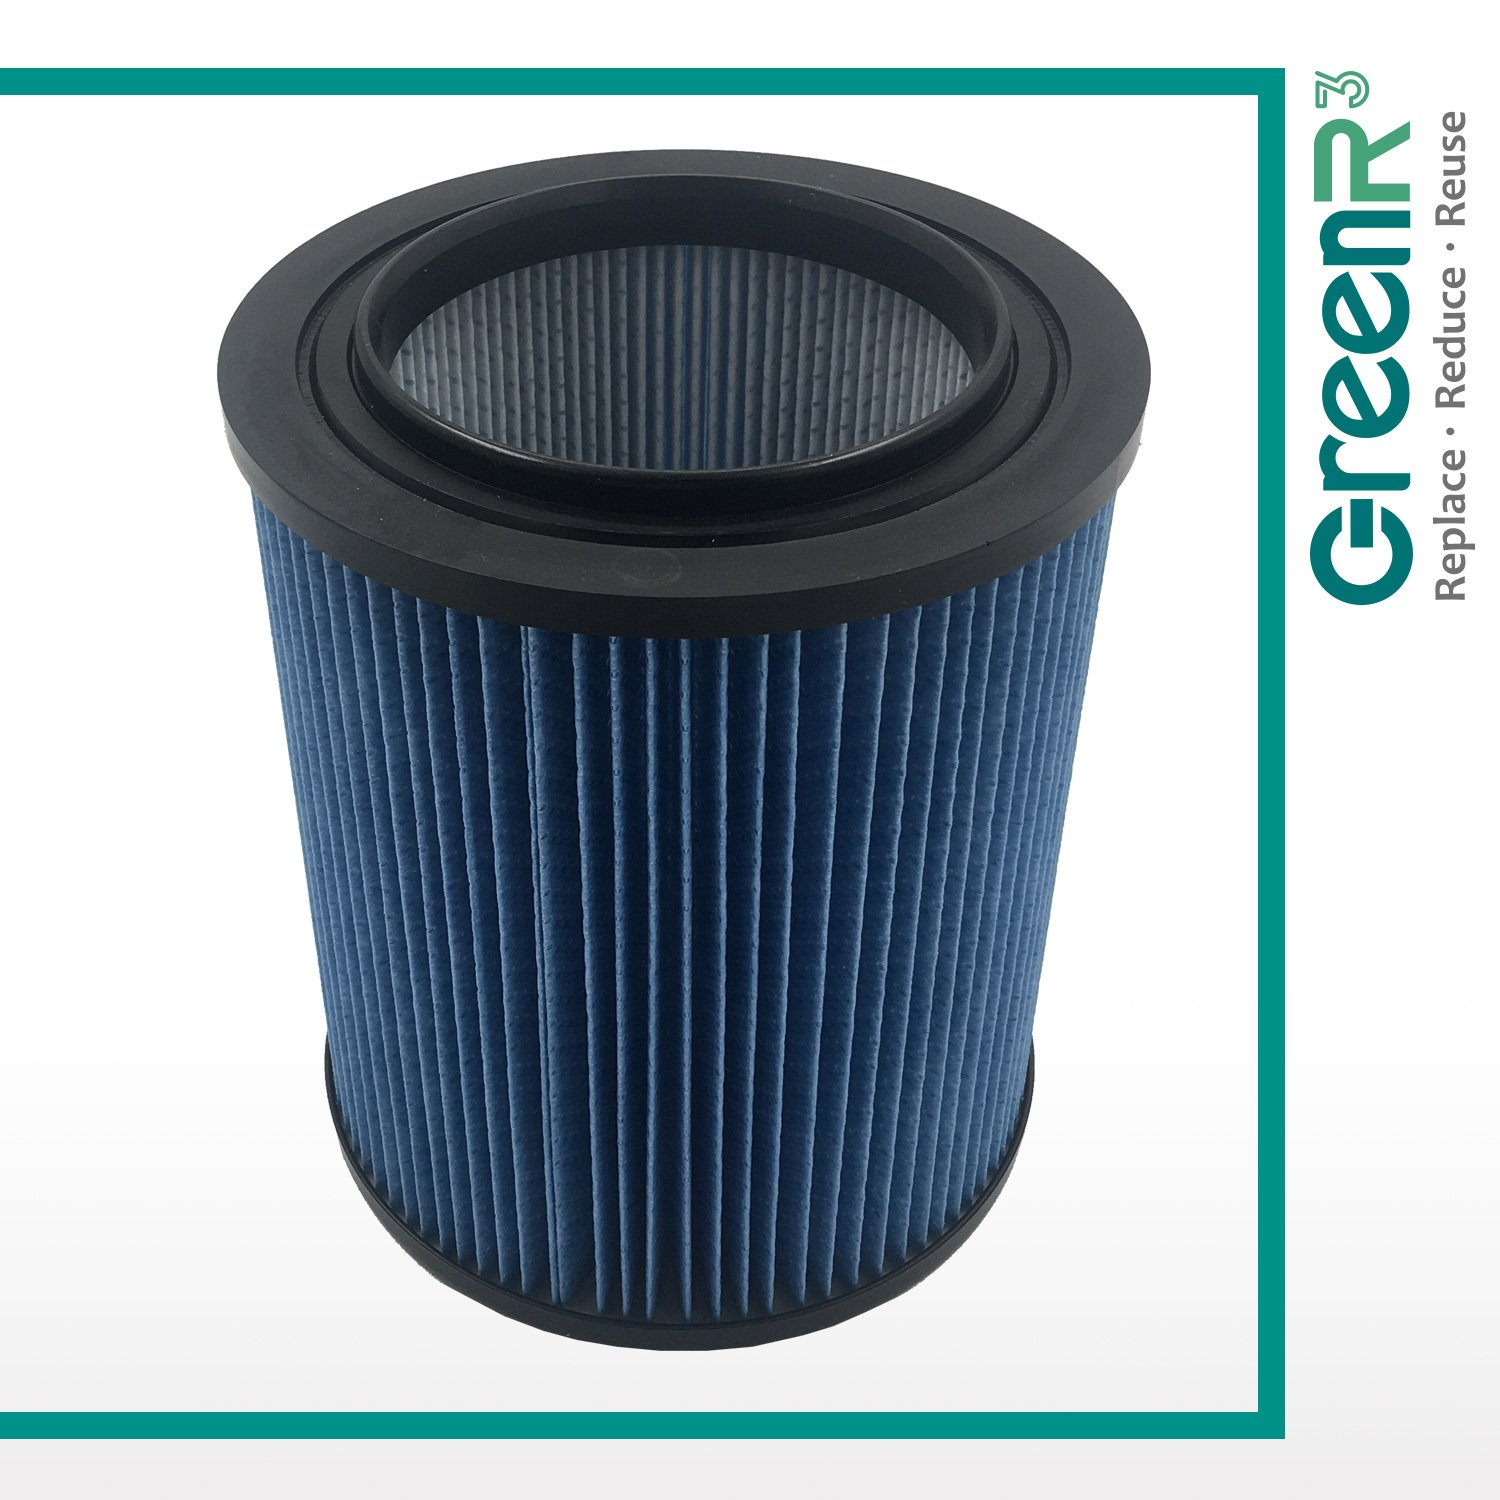 GreenR3 1-PACK HEPA Air Filters Vacuum Cleaners for Craftsman 17907 fits 113 125 Series Models Replenishment Replacement Parts Accessories and many more